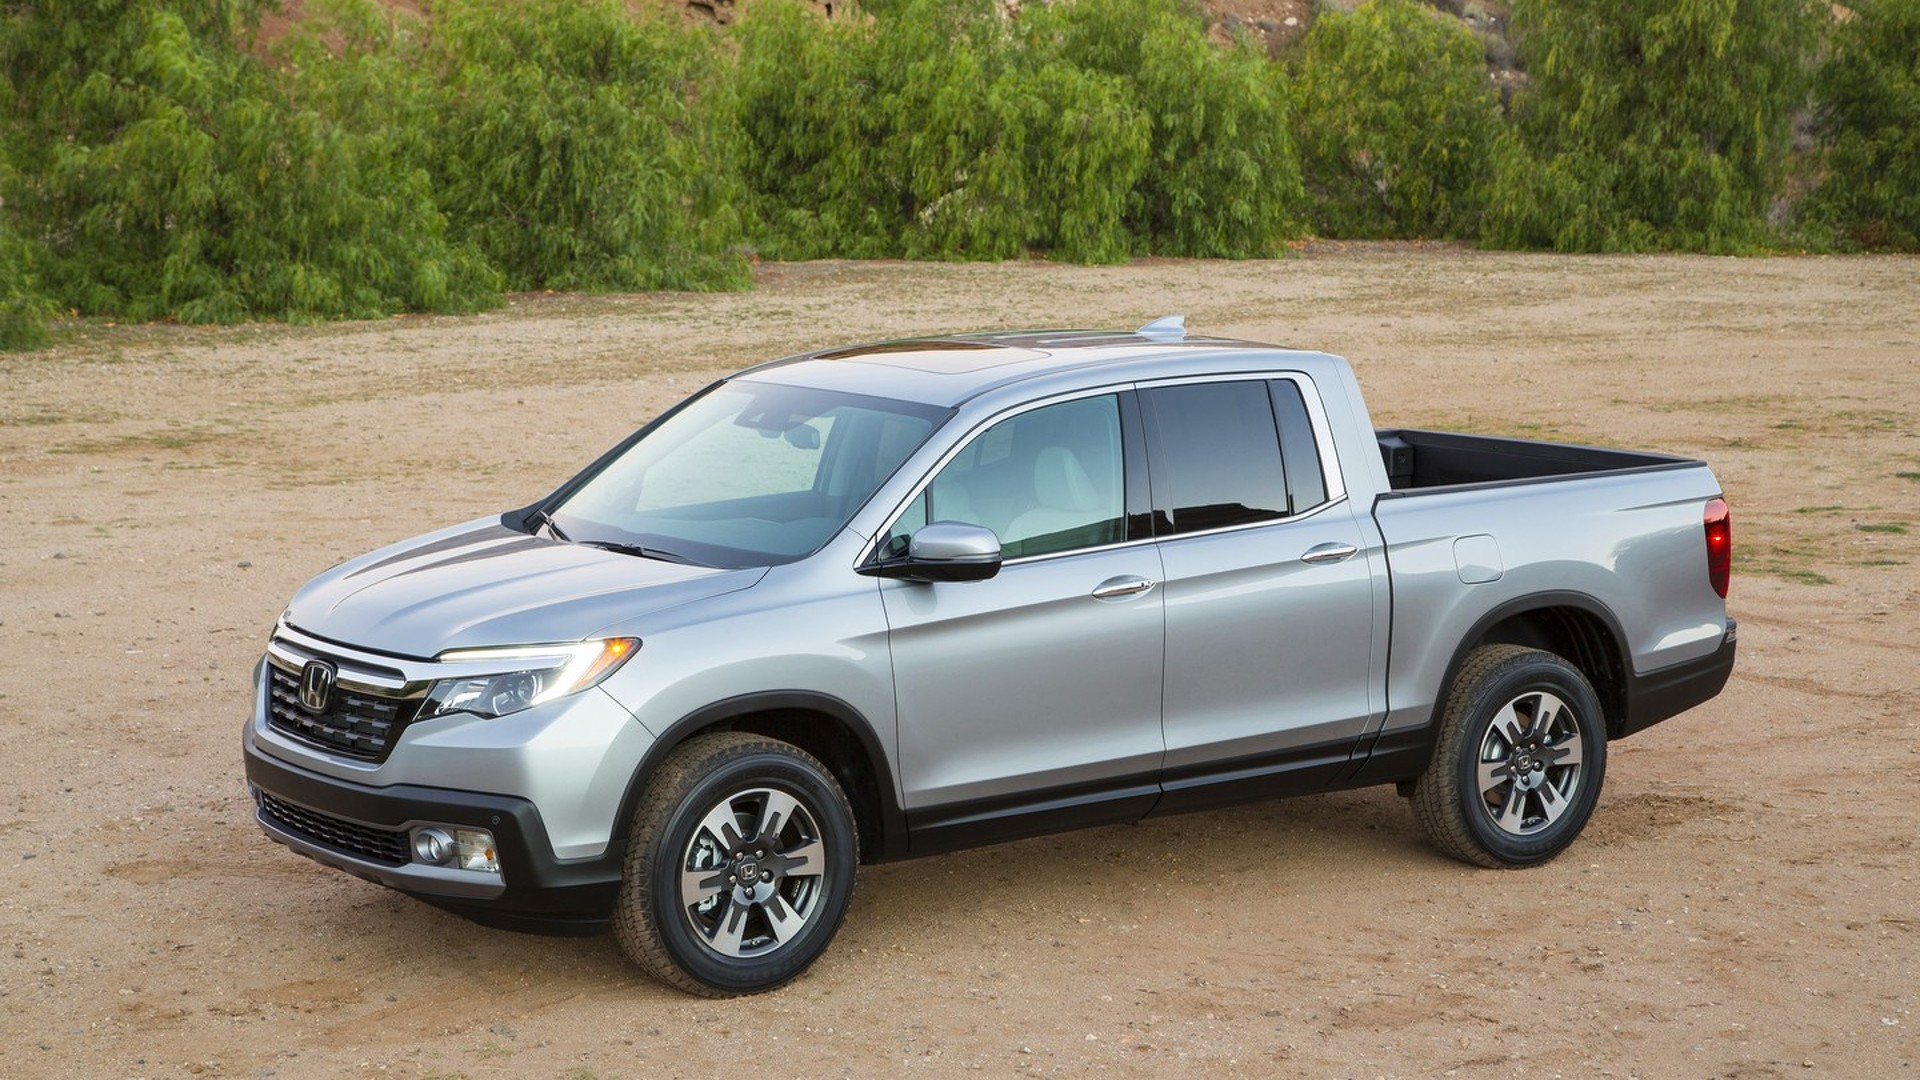 2017 honda ridgeline fuel economy tops all gas midsize pickups. Black Bedroom Furniture Sets. Home Design Ideas